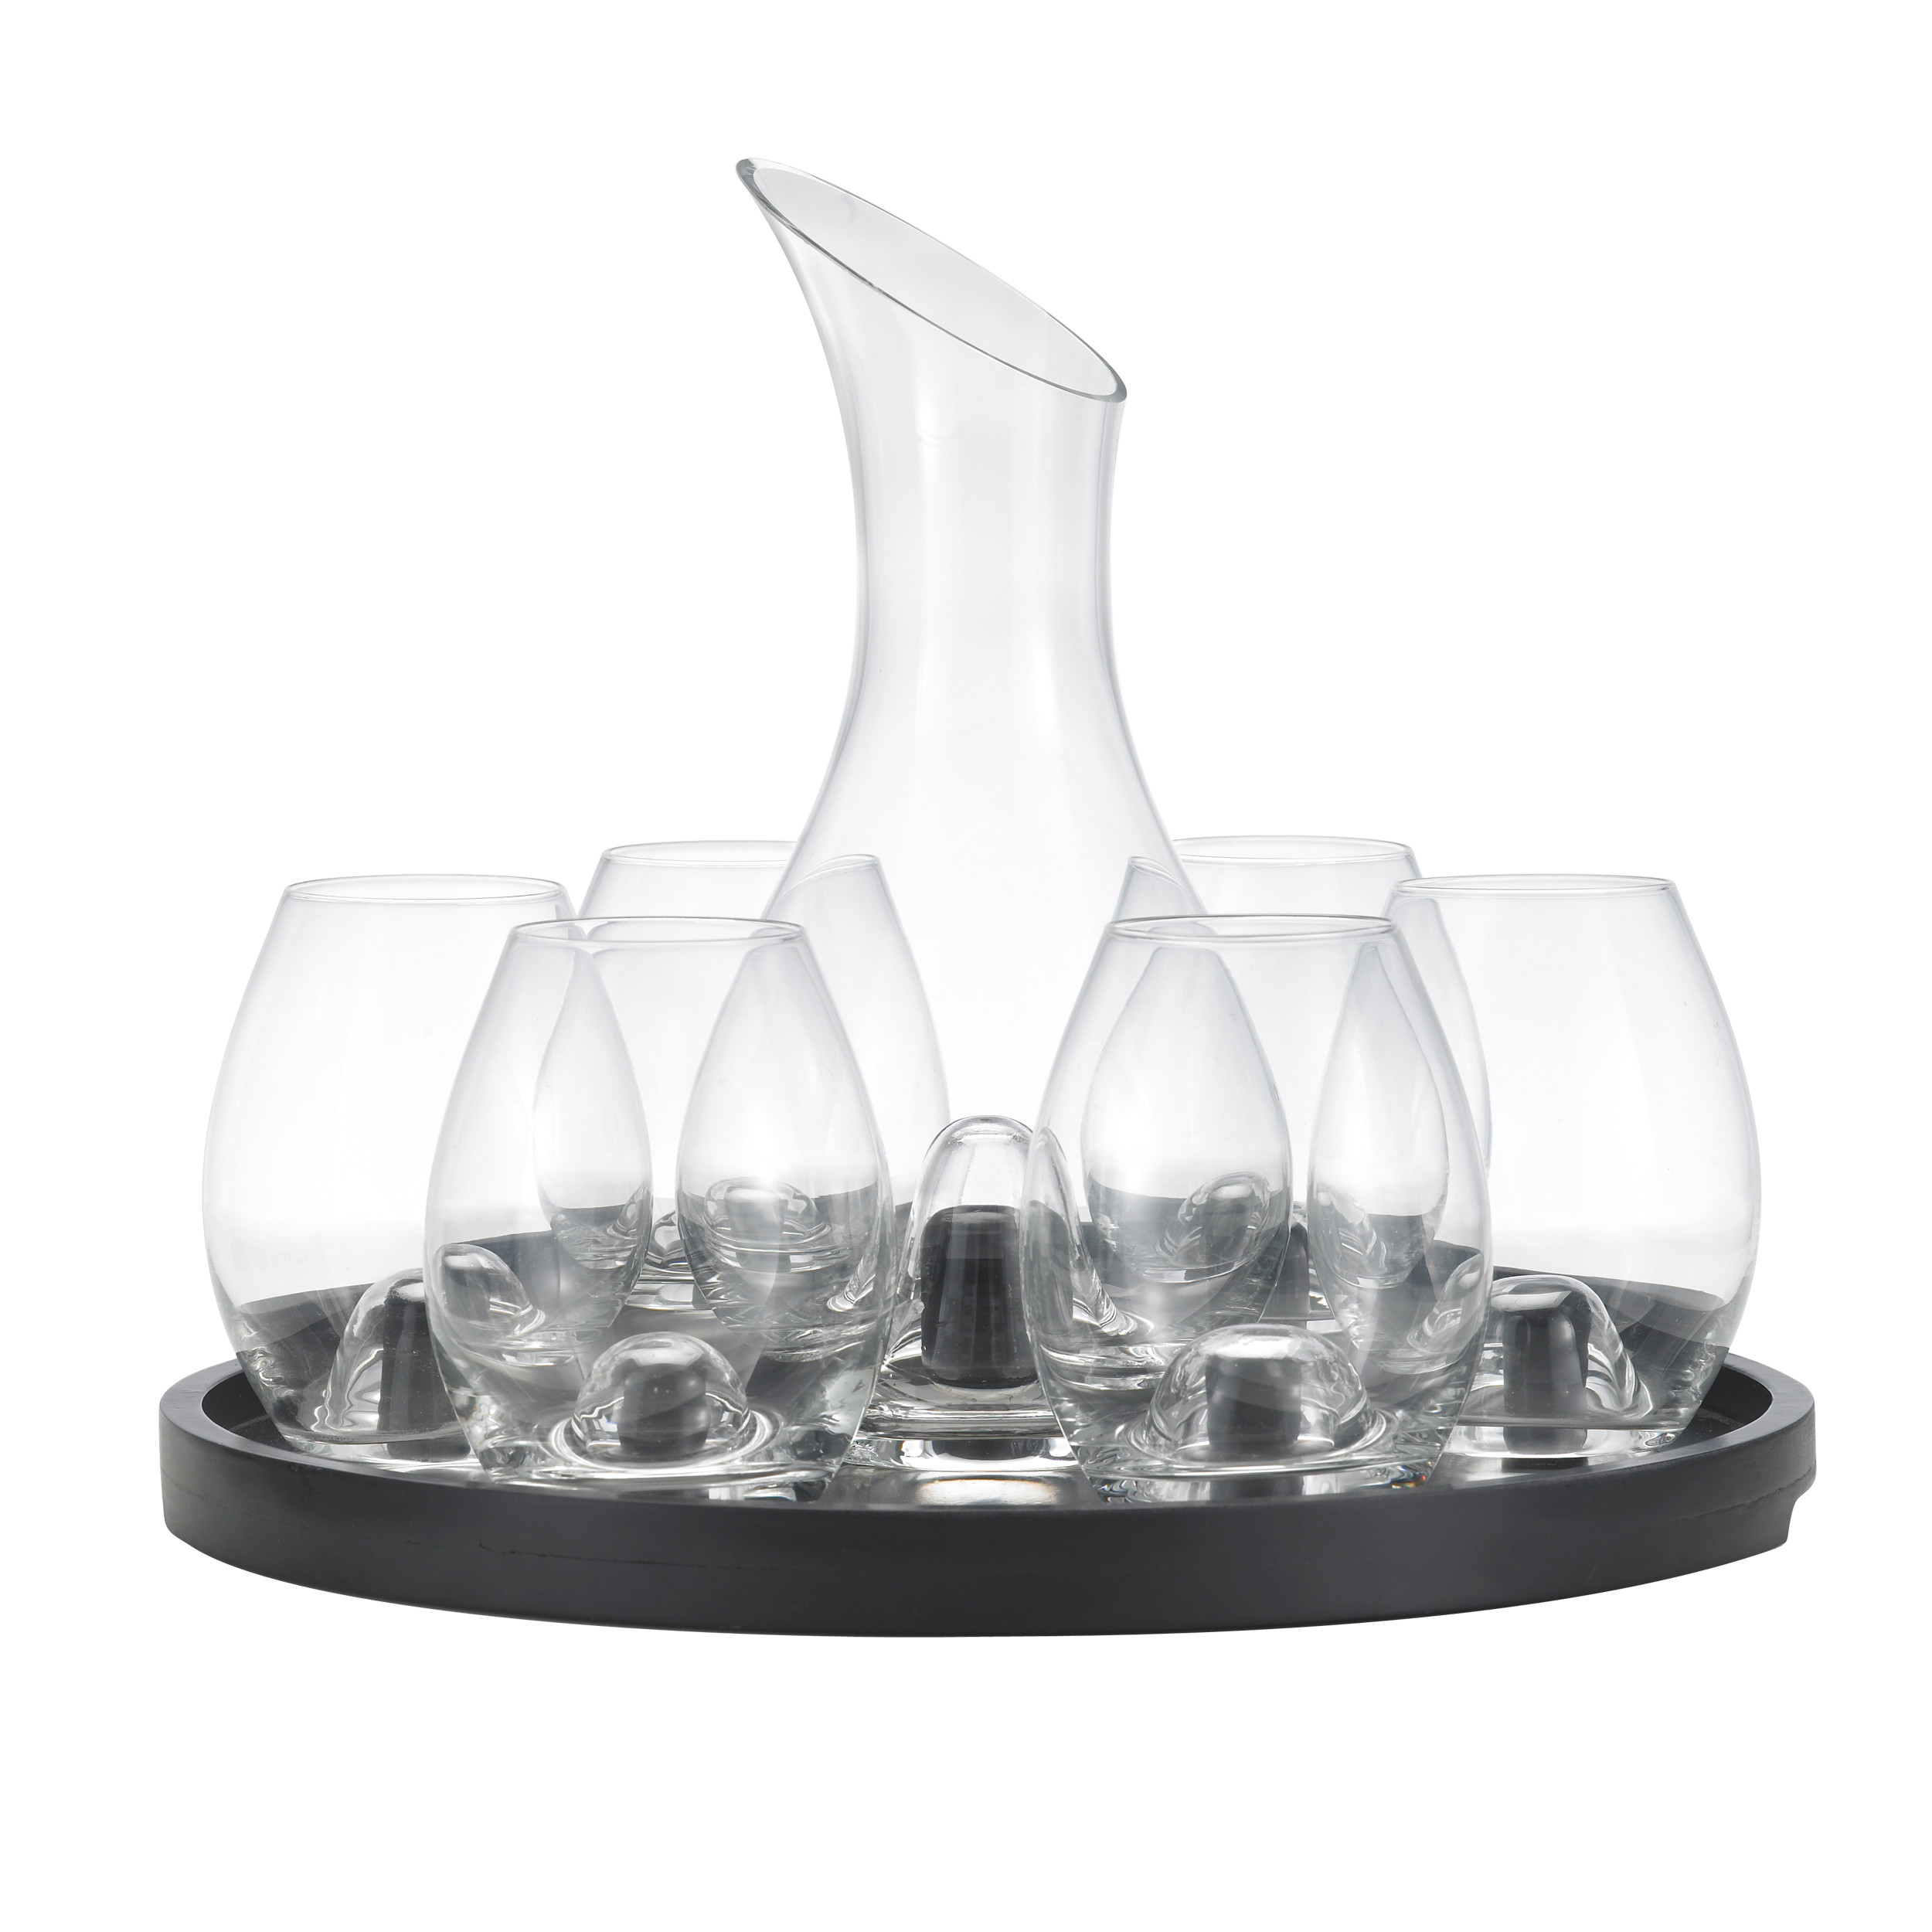 Fantastic decanter set for dining sets ideas with crystal decanter set